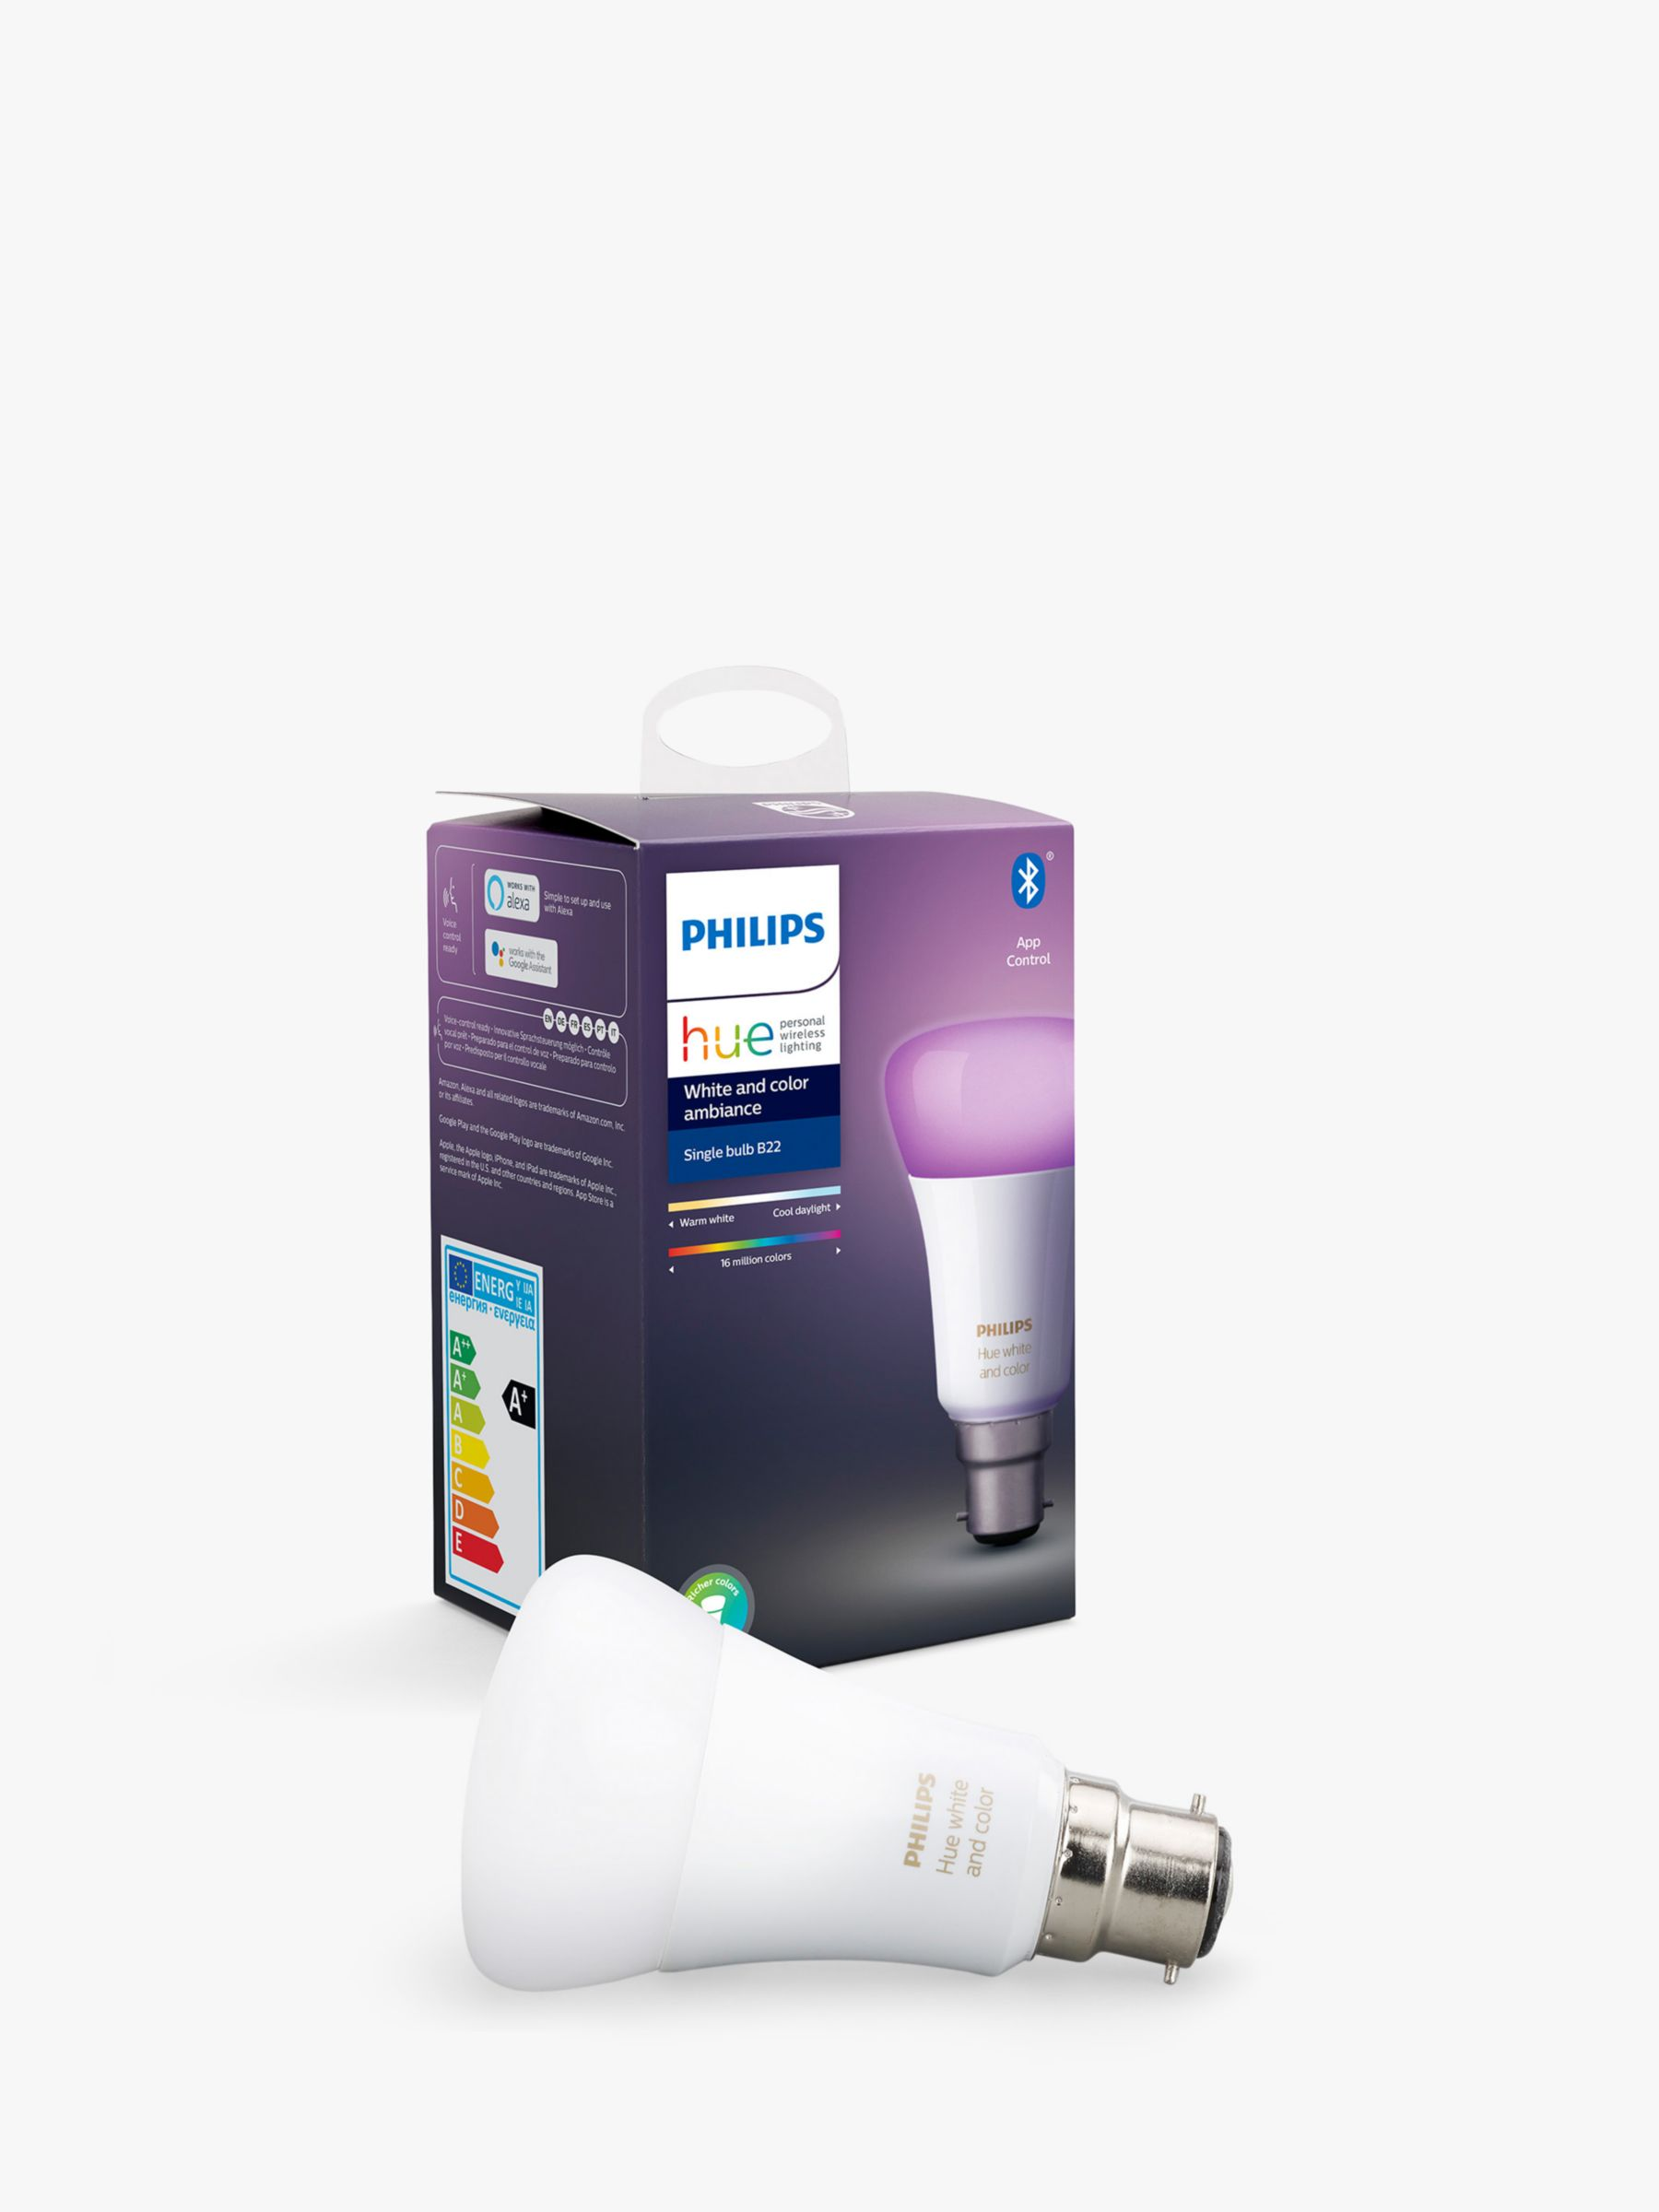 Philips Philips Hue White and Colour Ambiance Wireless Lighting LED Colour Changing Light Bulb with Bluetooth, 9W A60 B22 Bayonet Cap Bulb, Single